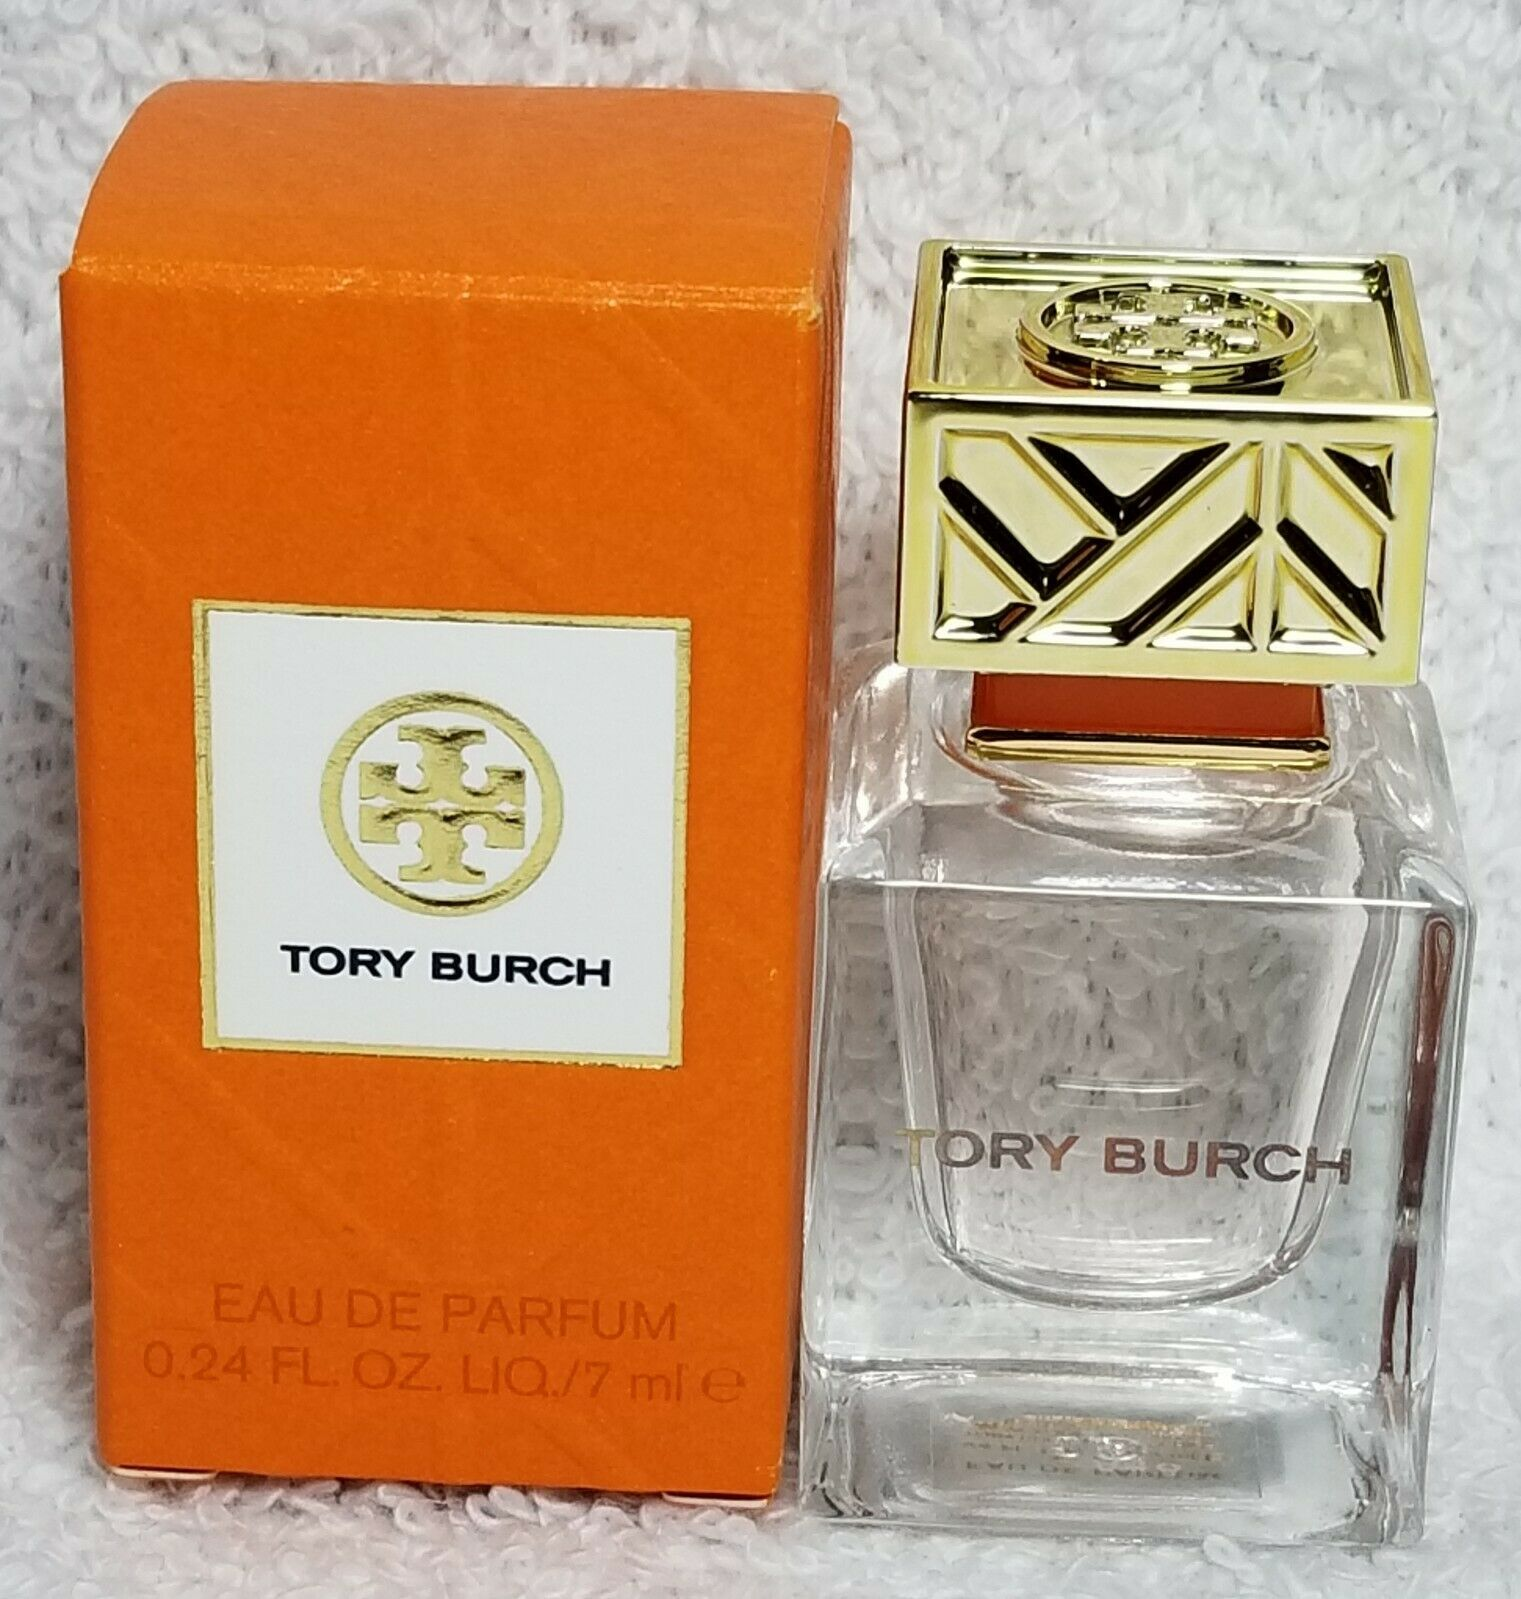 Primary image for Tory Burch TORY BURCH Eau De Parfum EDP Splash Orange Women Mini .24 oz/7mL New